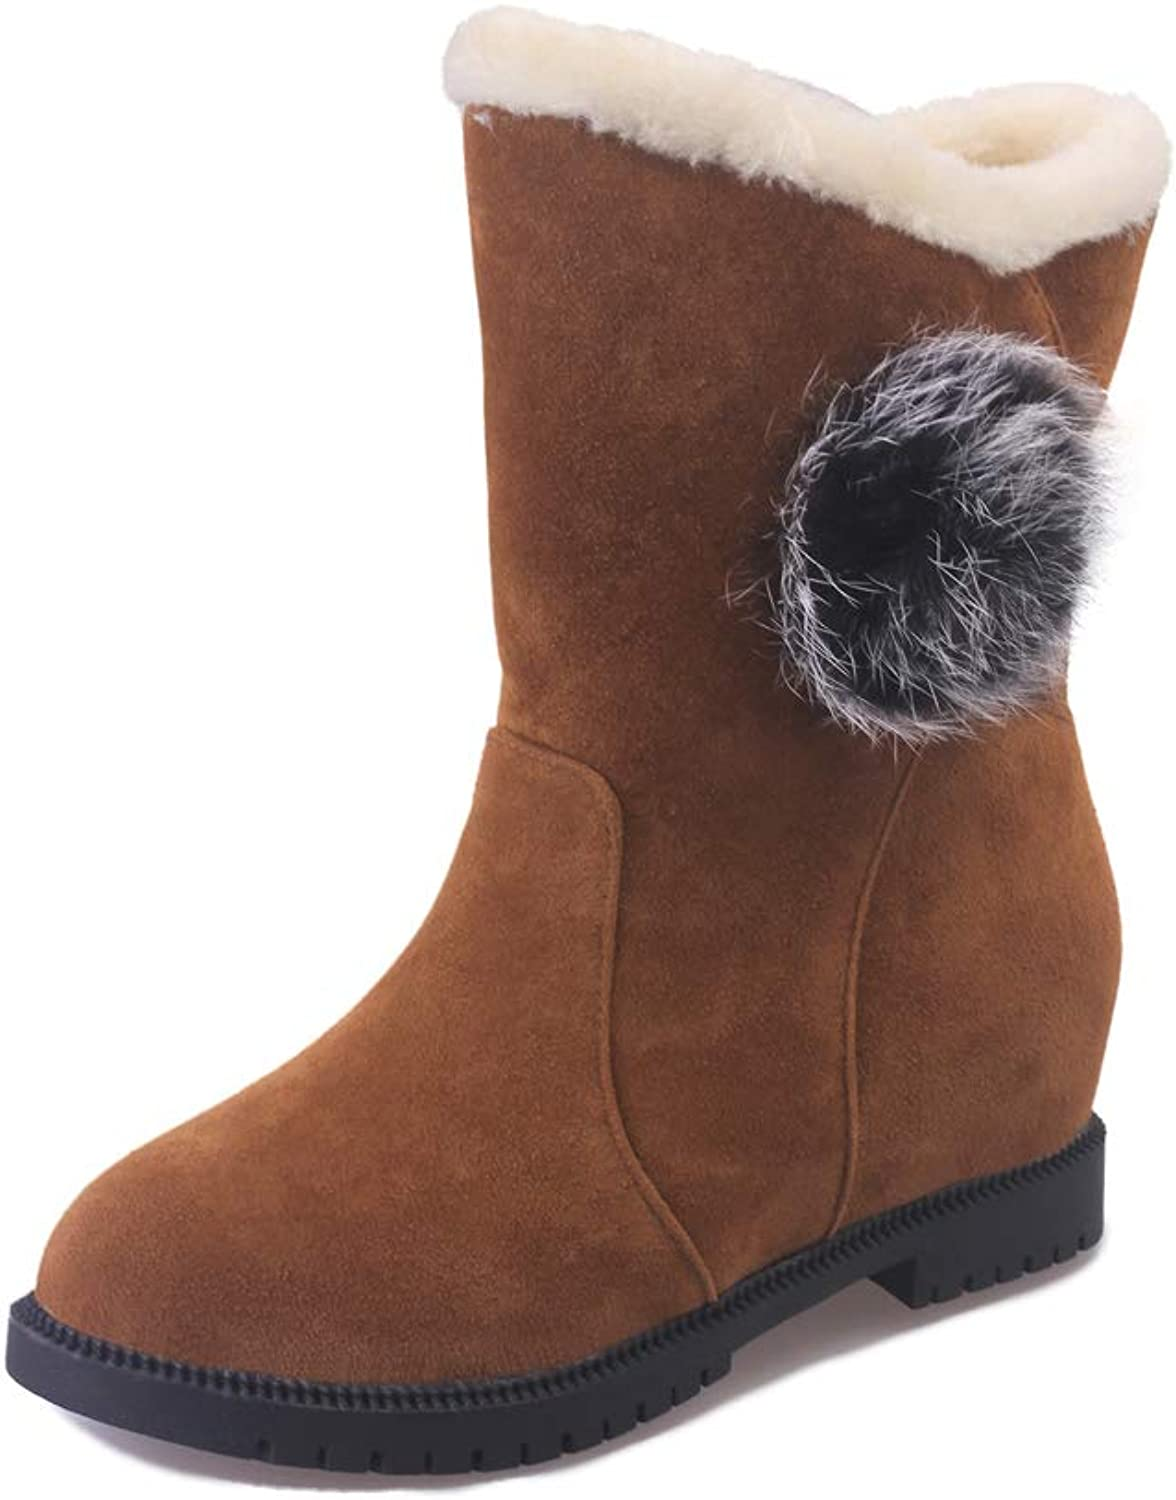 Quality.A Women's Boots, Warm Snow Boots, Martin Boots, Fashion Boots